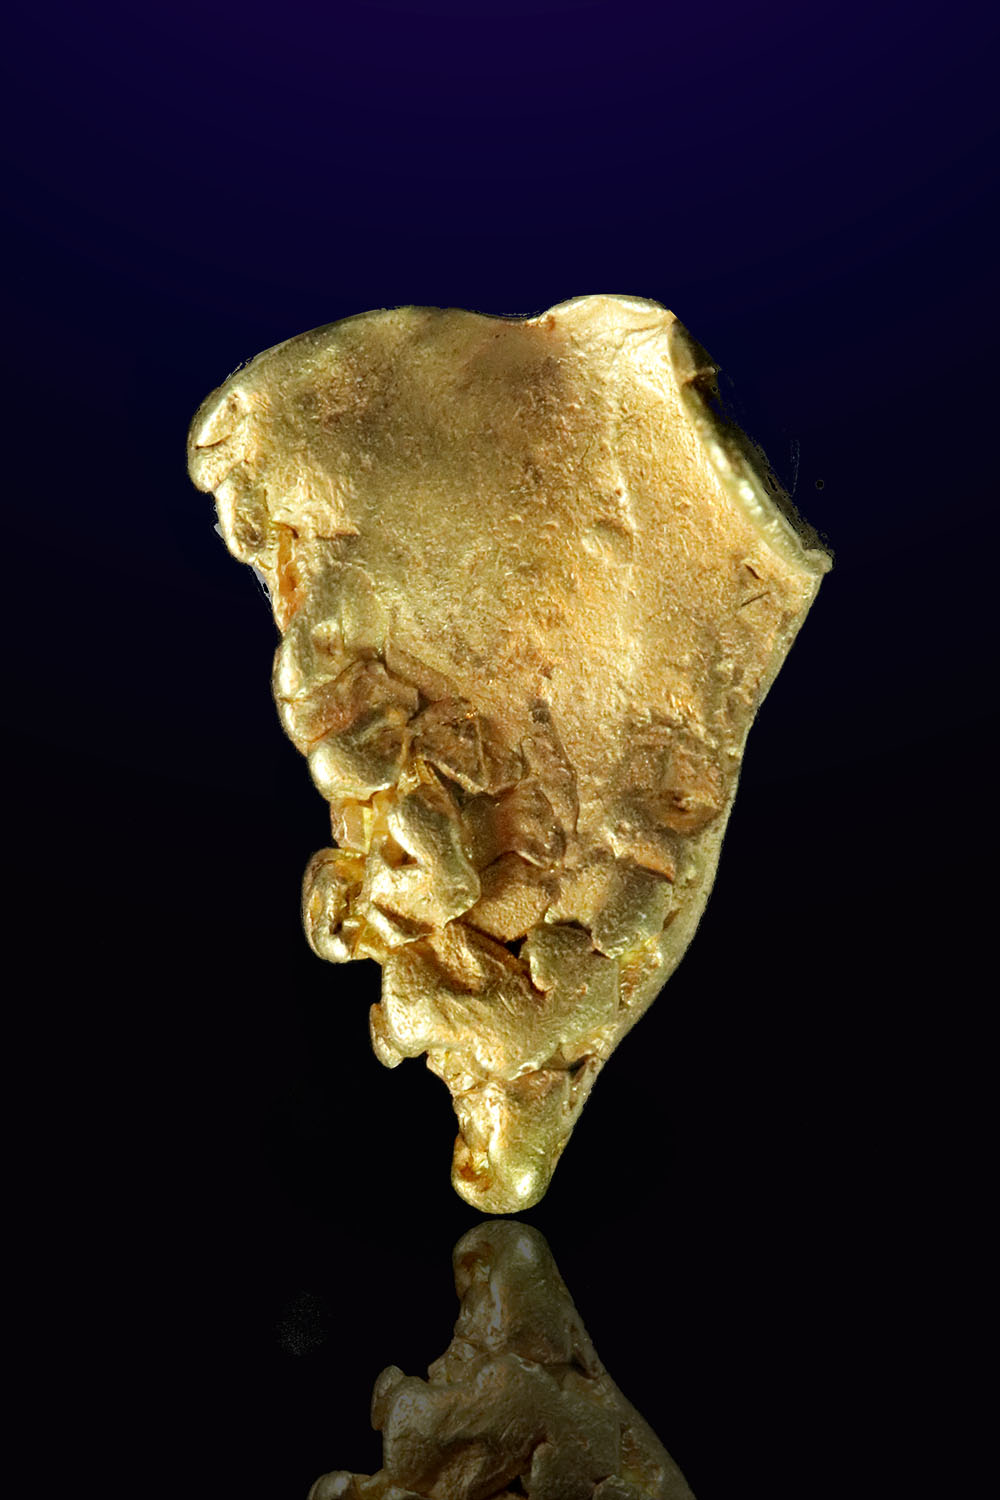 Natural Thick Leaf Gold - Mt. Kare, Papua New Guinea